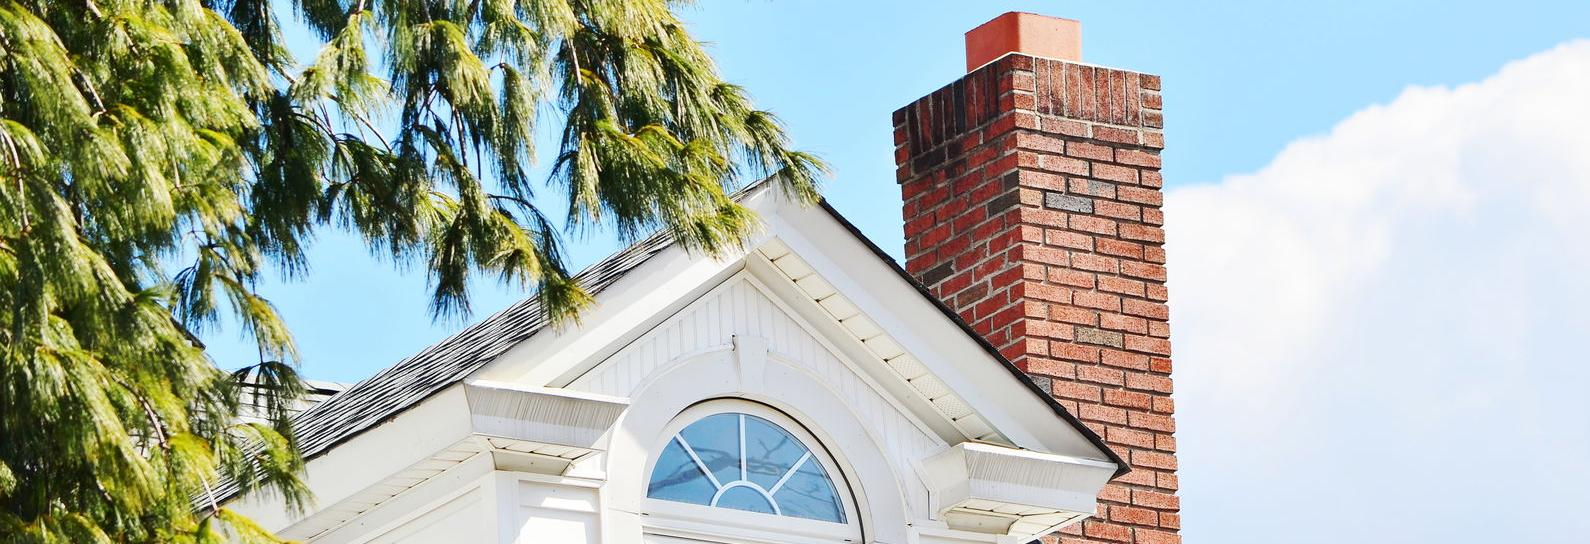 chimney sweeping,dryer vent,chimney repairs,chimney caps,chimney liners